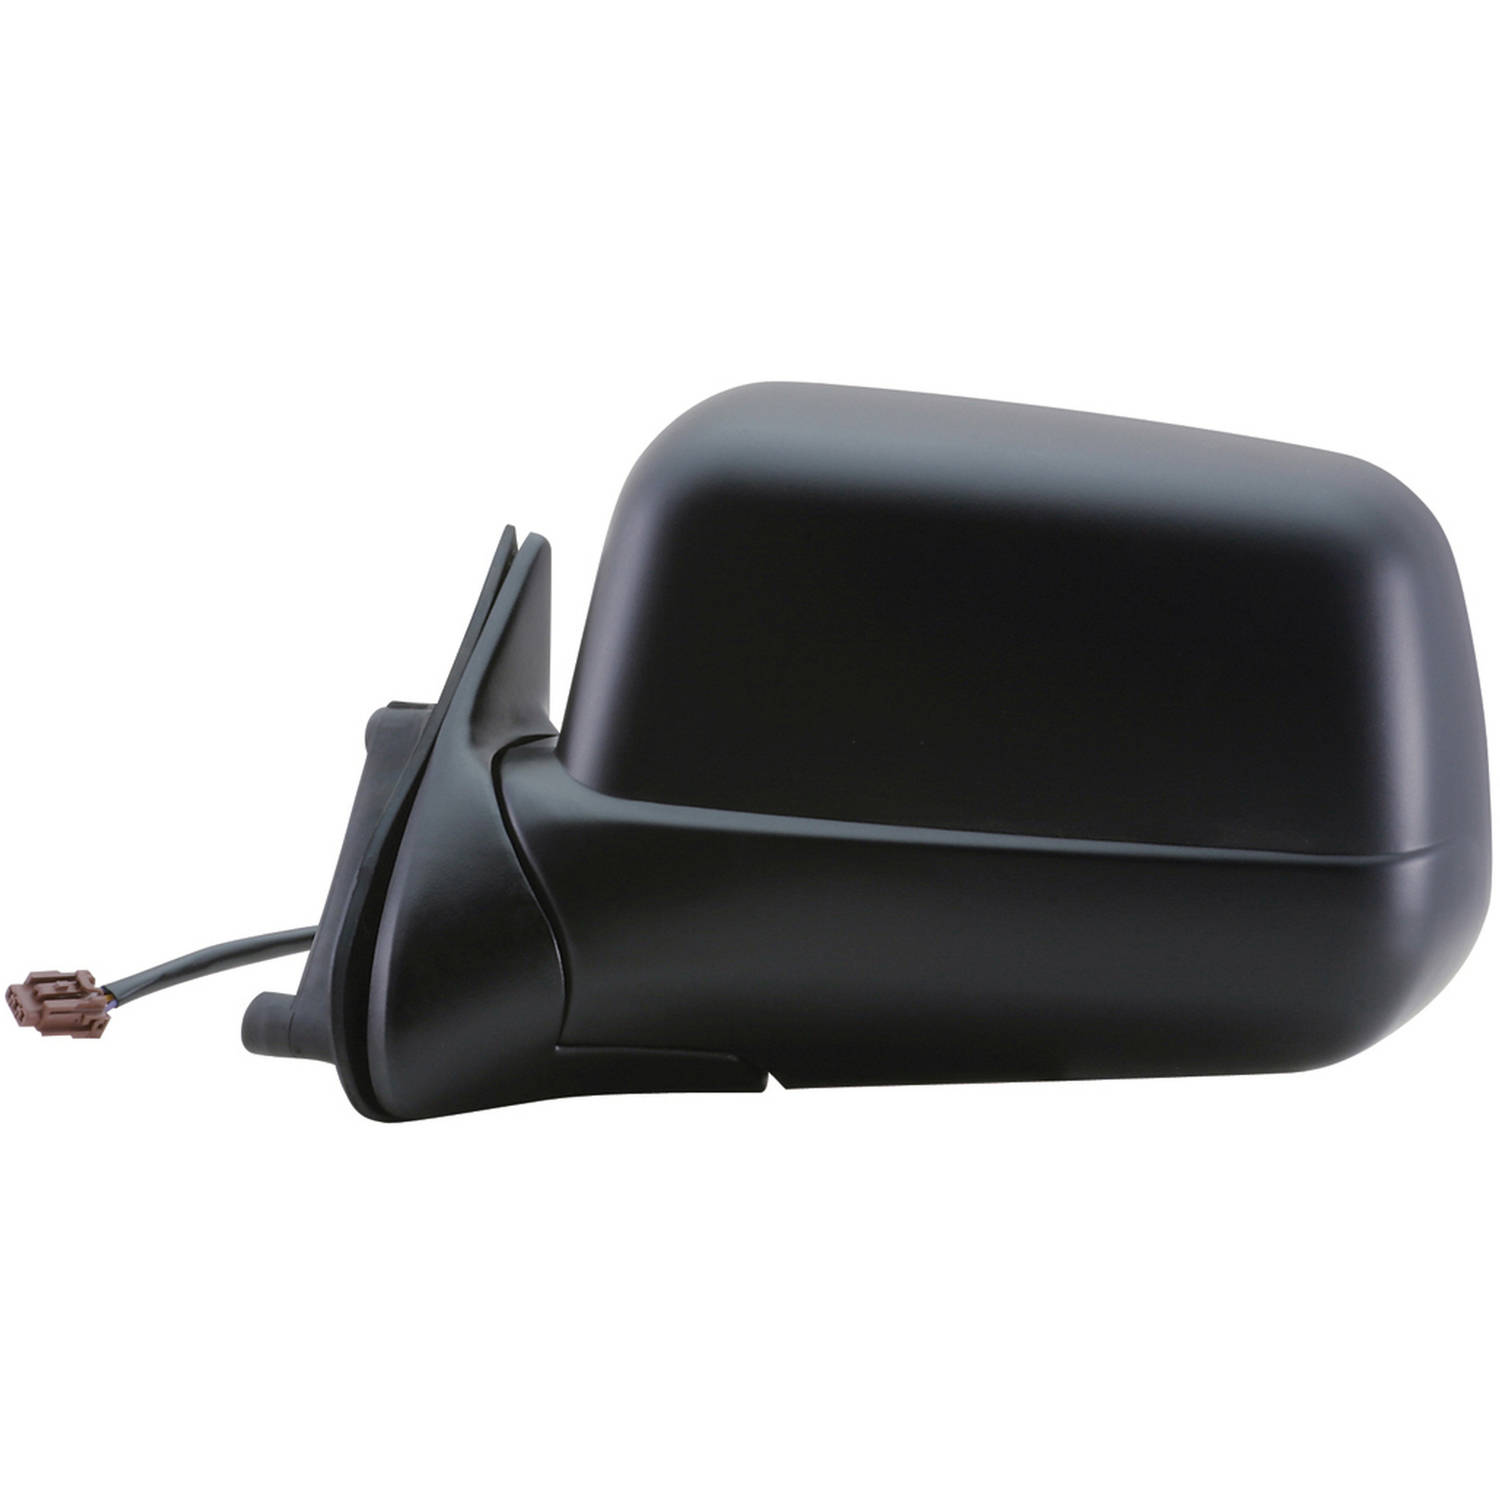 68018N - Fit System 98-04 Nissan Frontier, Xterra, OEM Style Replacement Mirror, Driver Side - check description for fitment